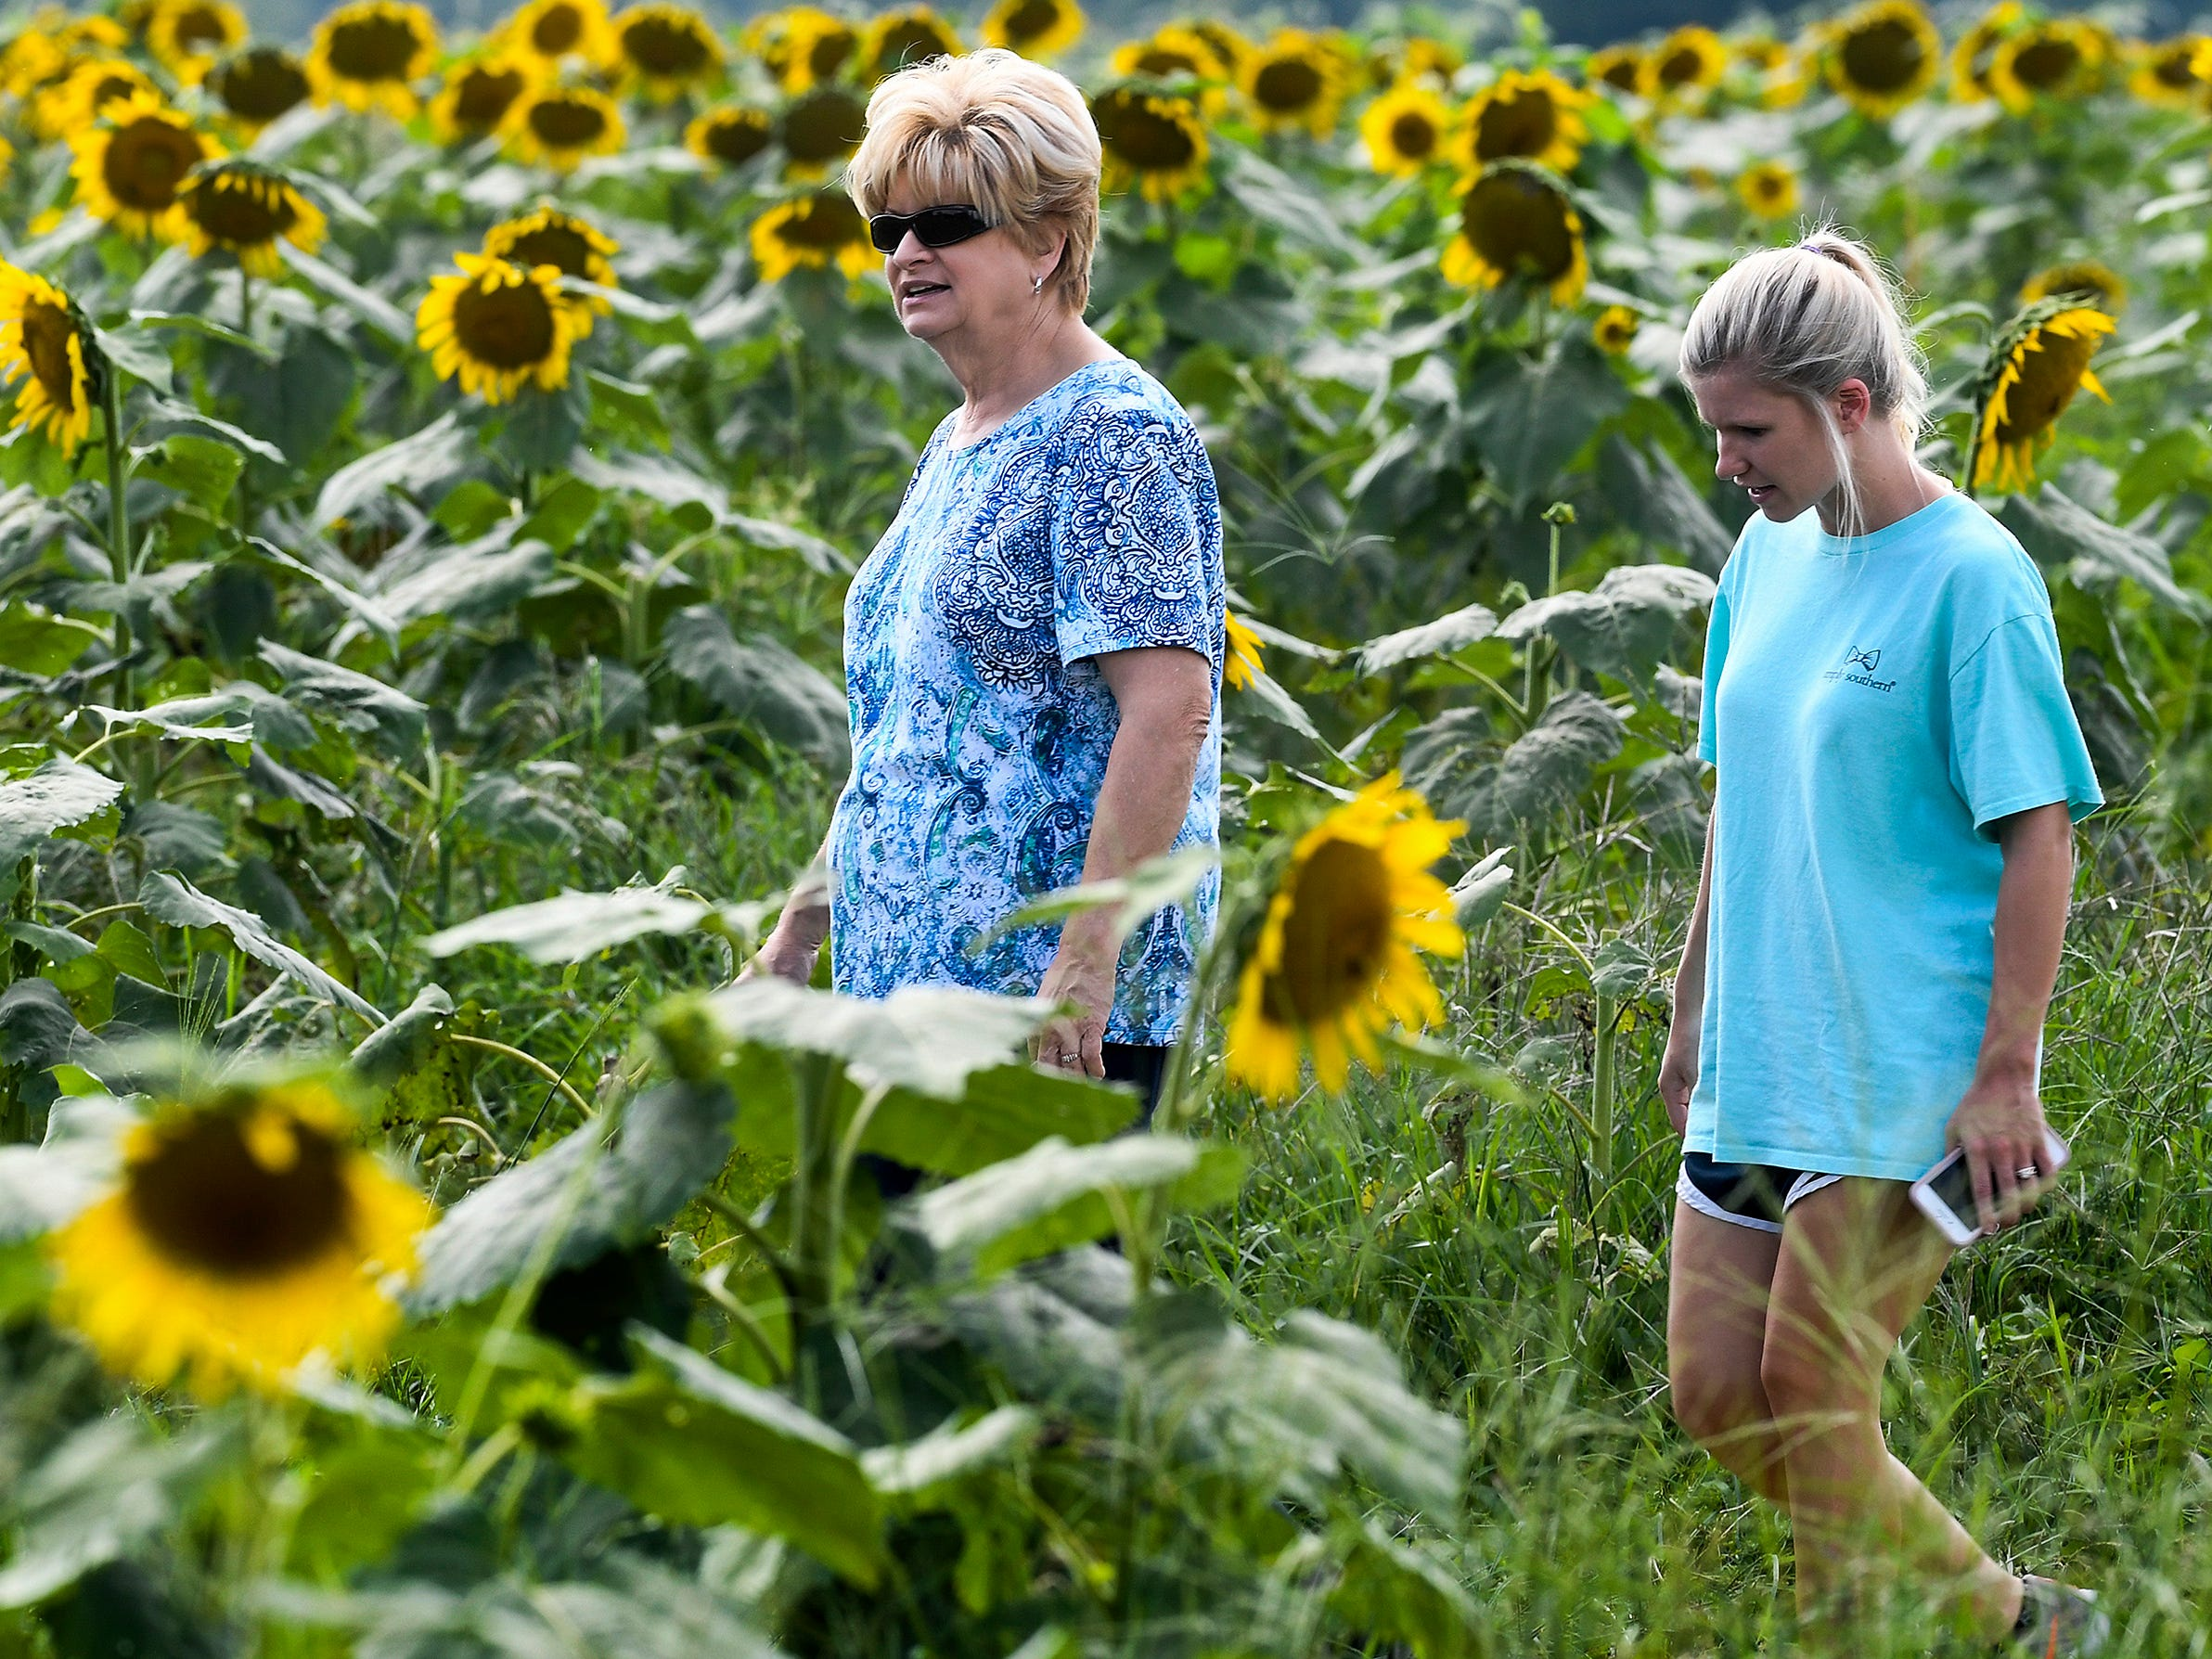 Sunflowers bloom in the Sheridan family sunflower field about five miles west of Autaugaville, Ala. on Monday August 13, 2018.